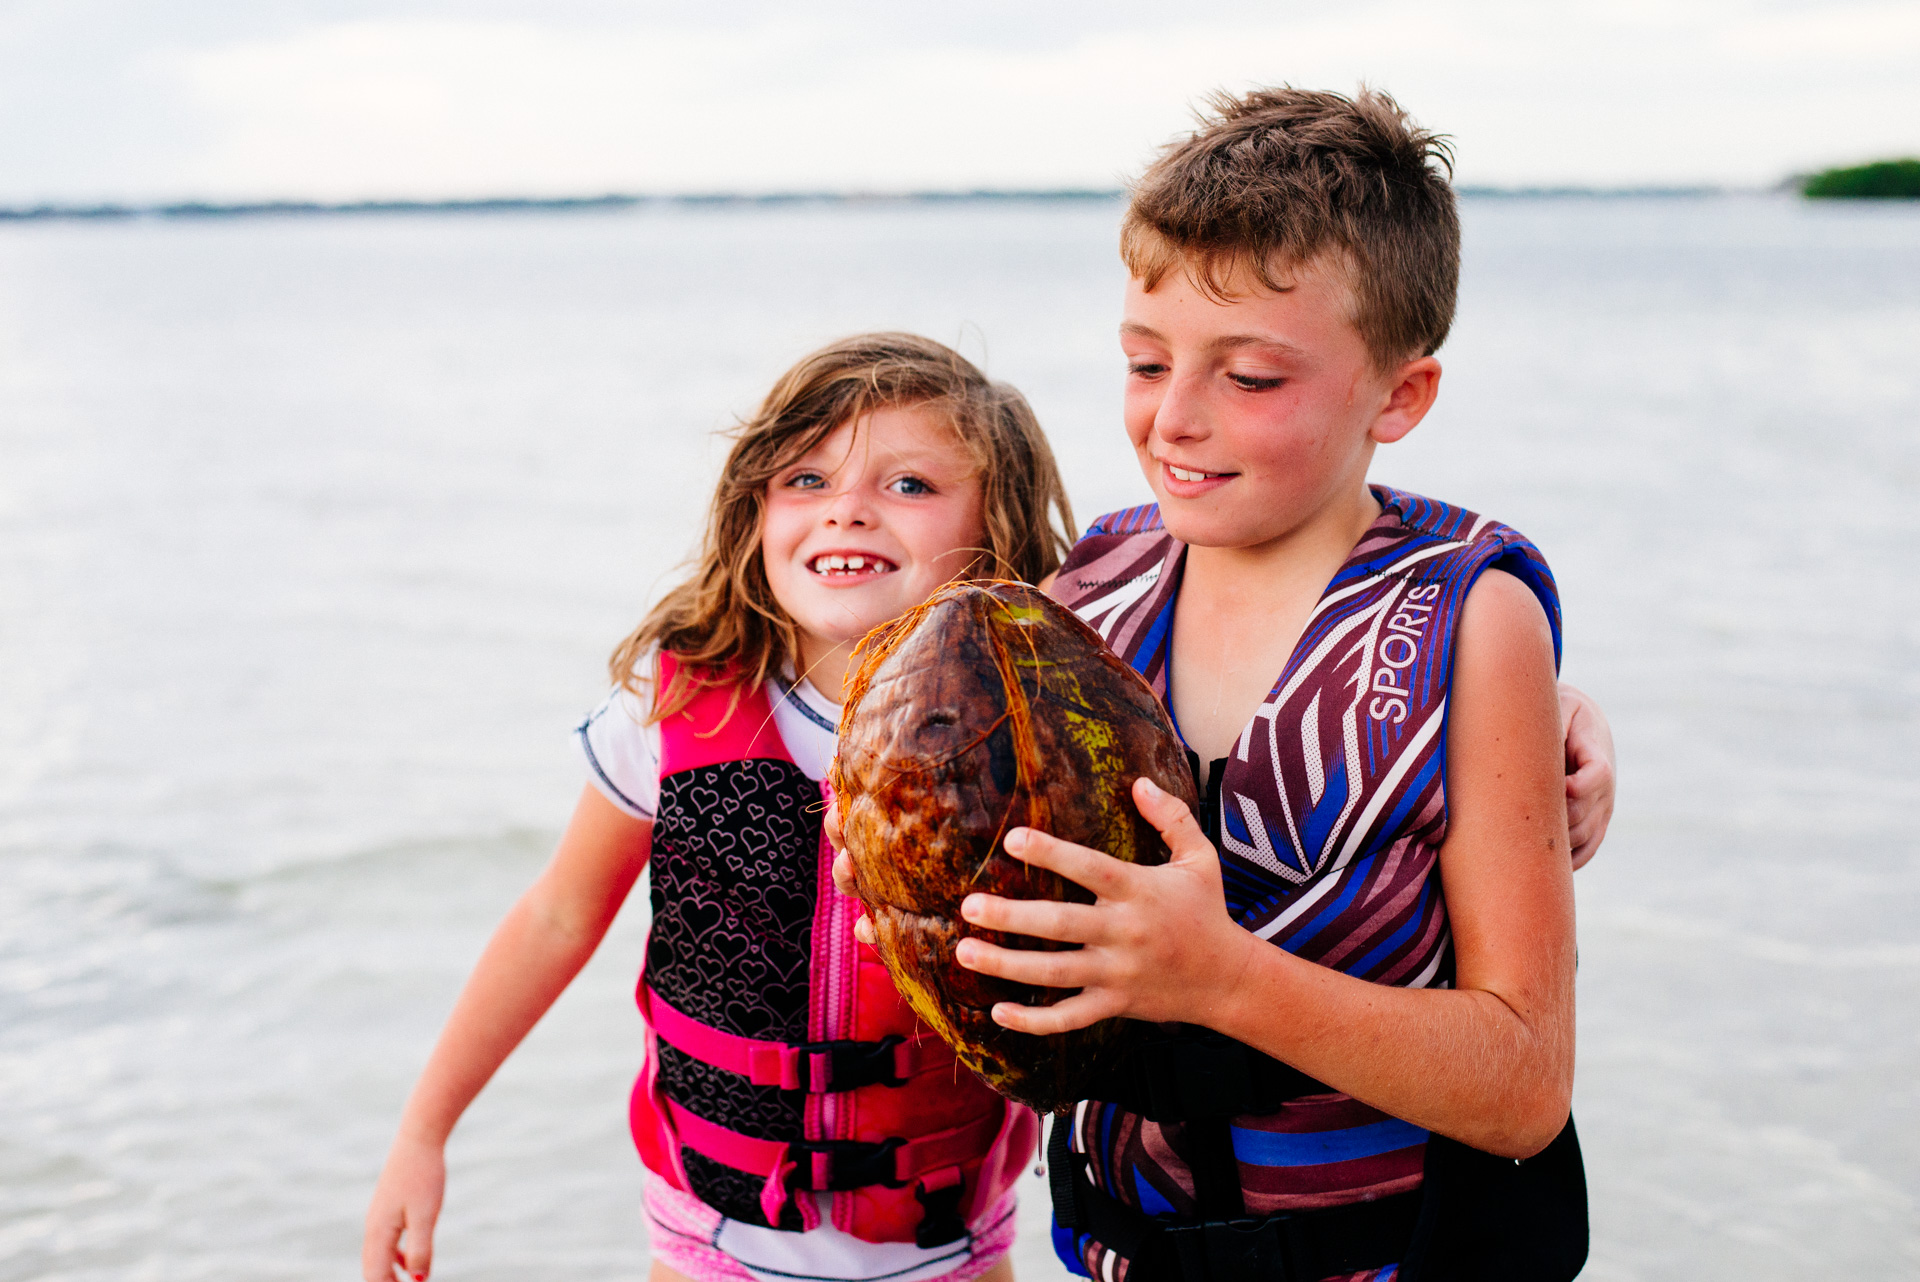 kids with coconut, moss image, cuba, florida, chris moss